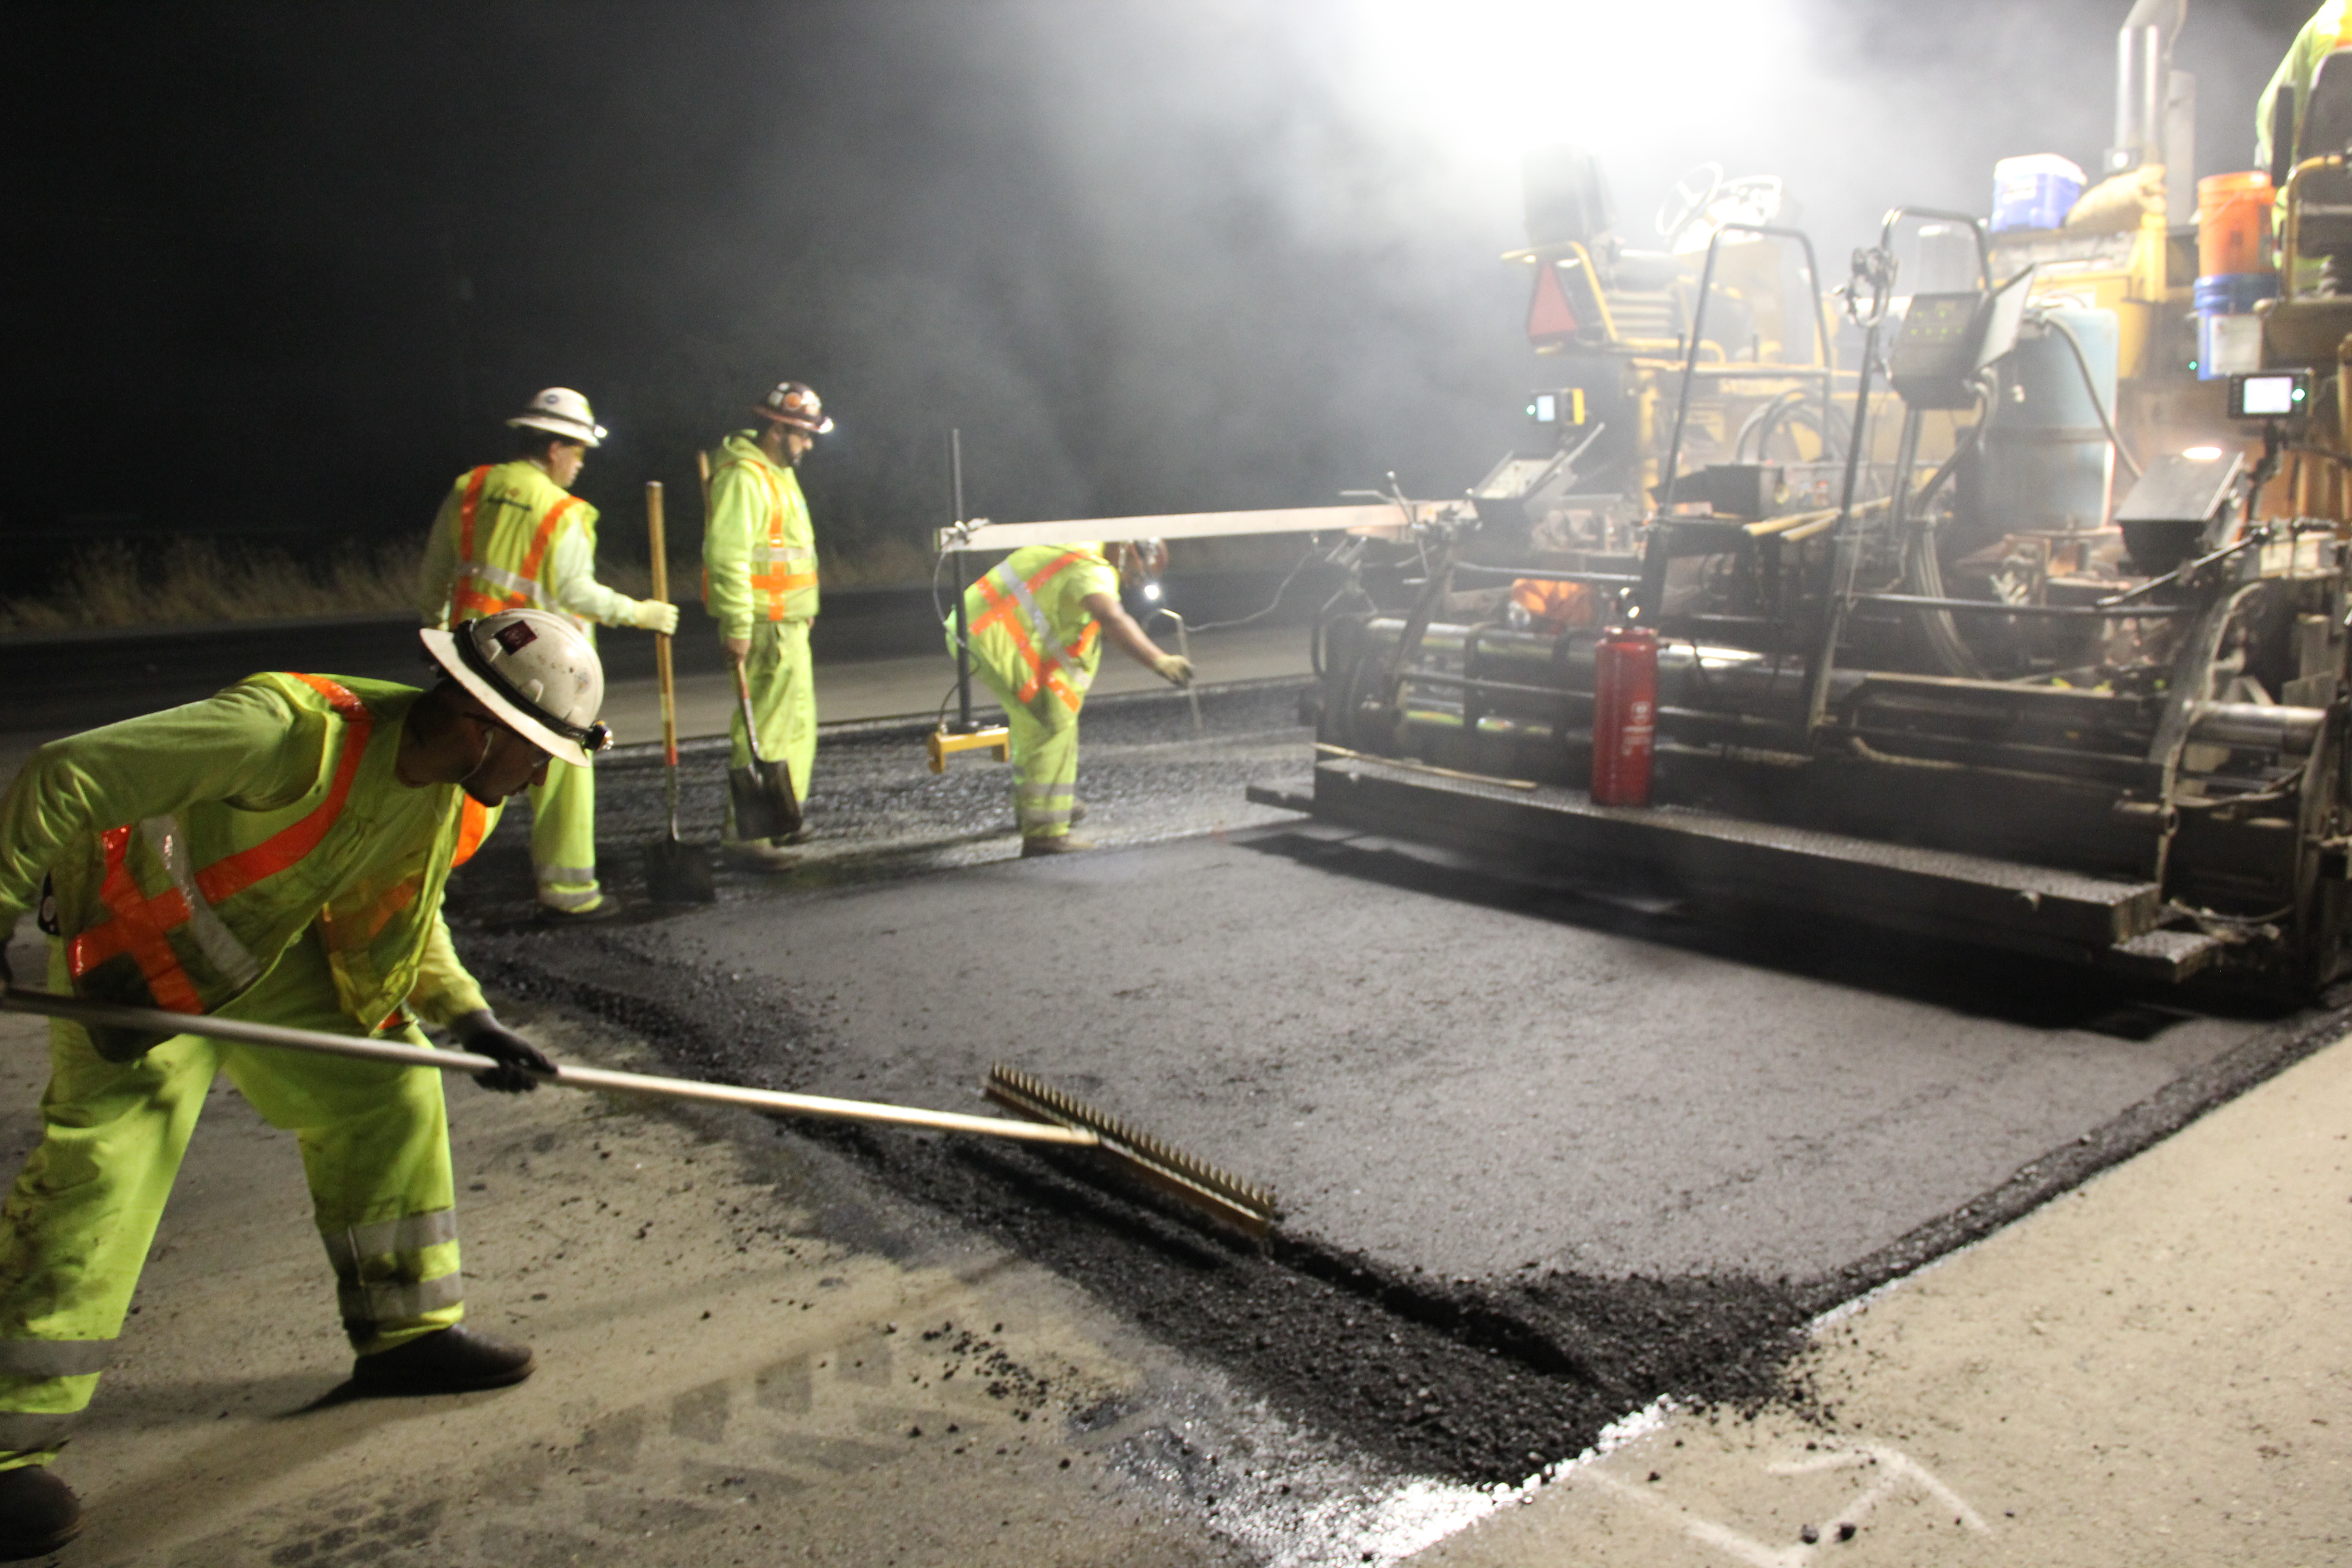 Caltrans and industry work to improve Section 39